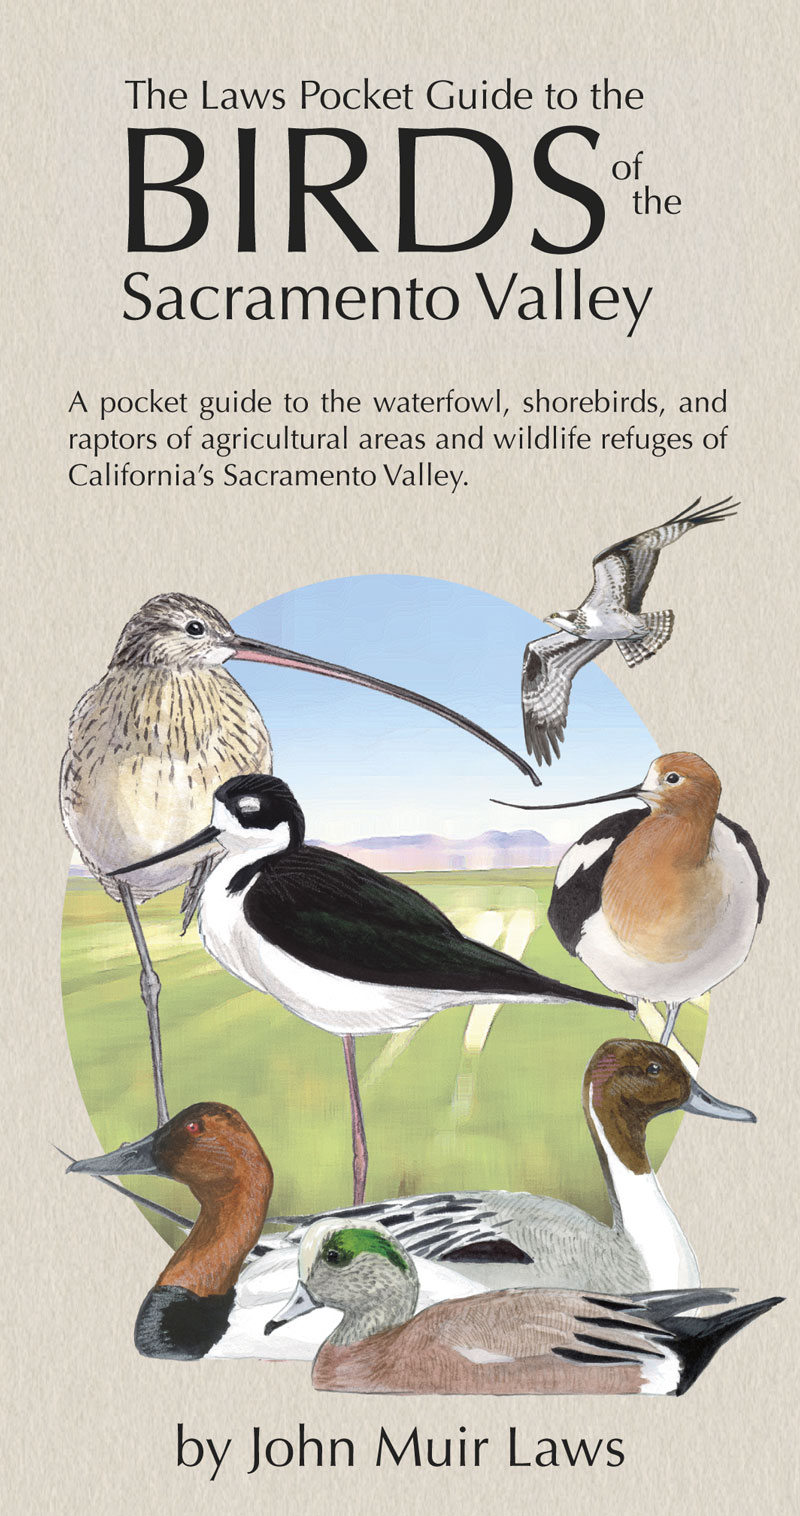 The Laws Pocket Guide to the Birds of the Sacramento Valley